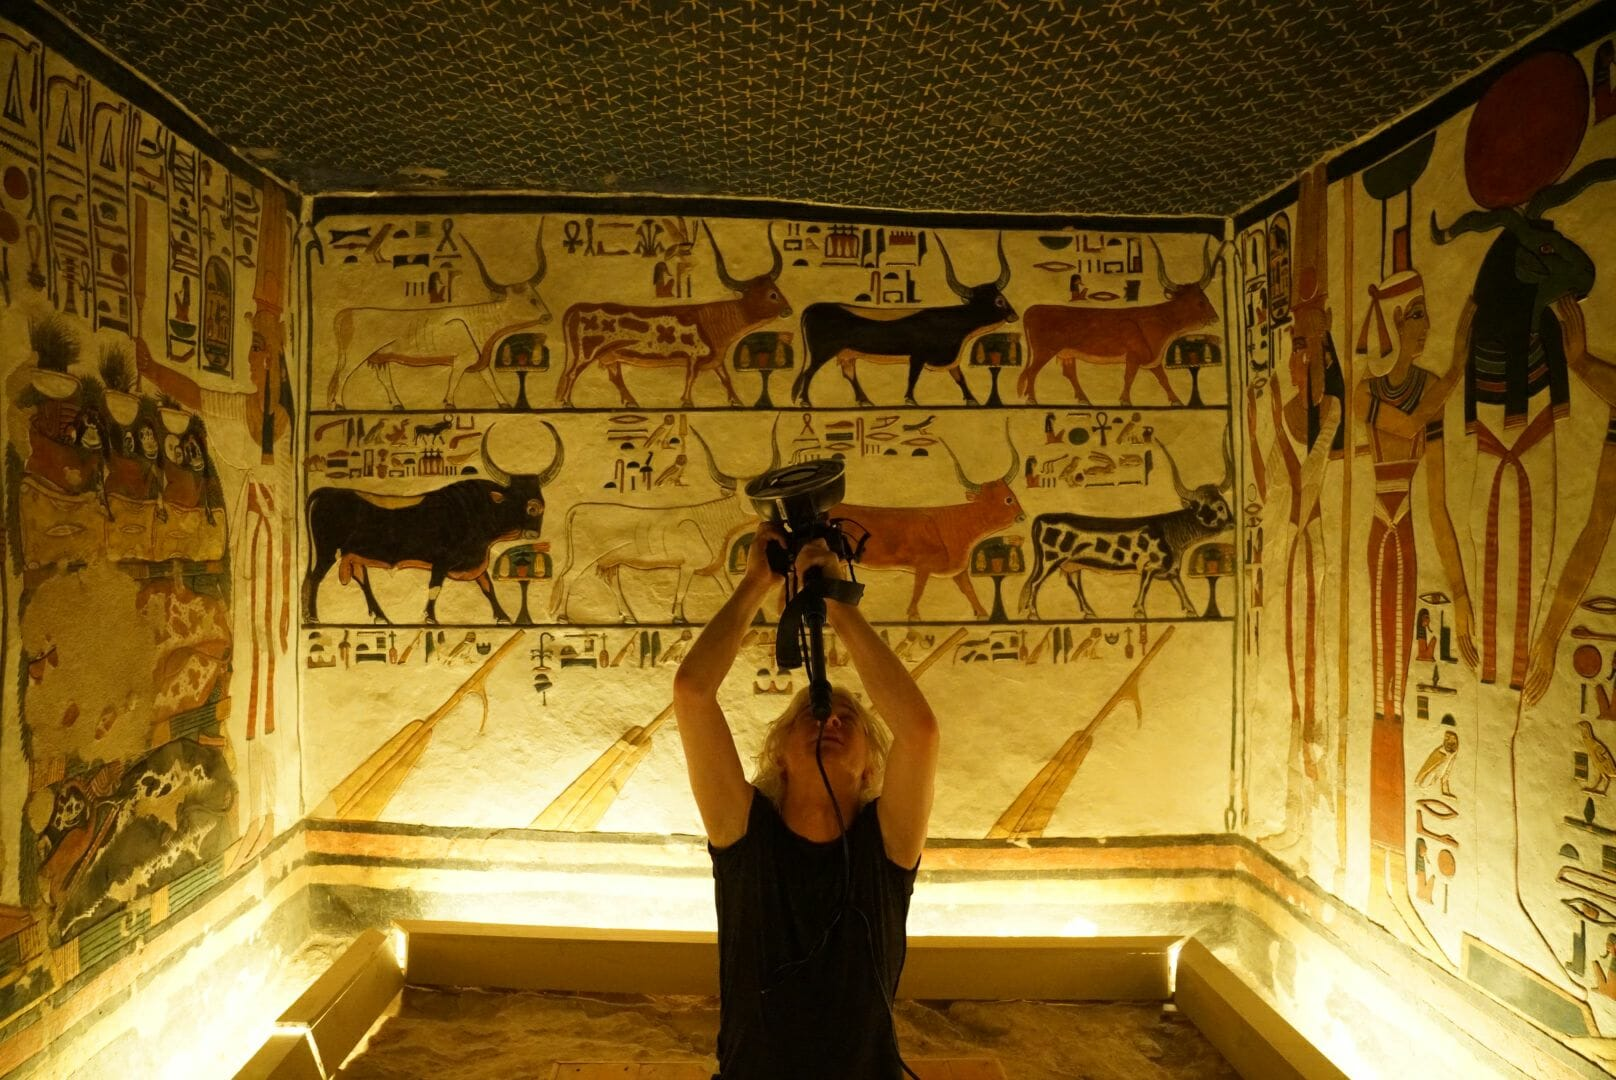 che de boer photographs nefertari's tomb for virtual environment